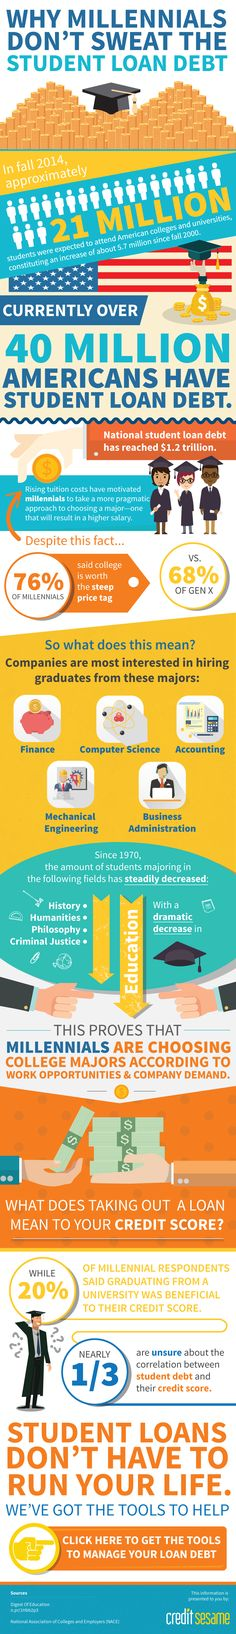 Why Millennials Don't Sweat the Student Loan Debt #infographic #Education #Finance